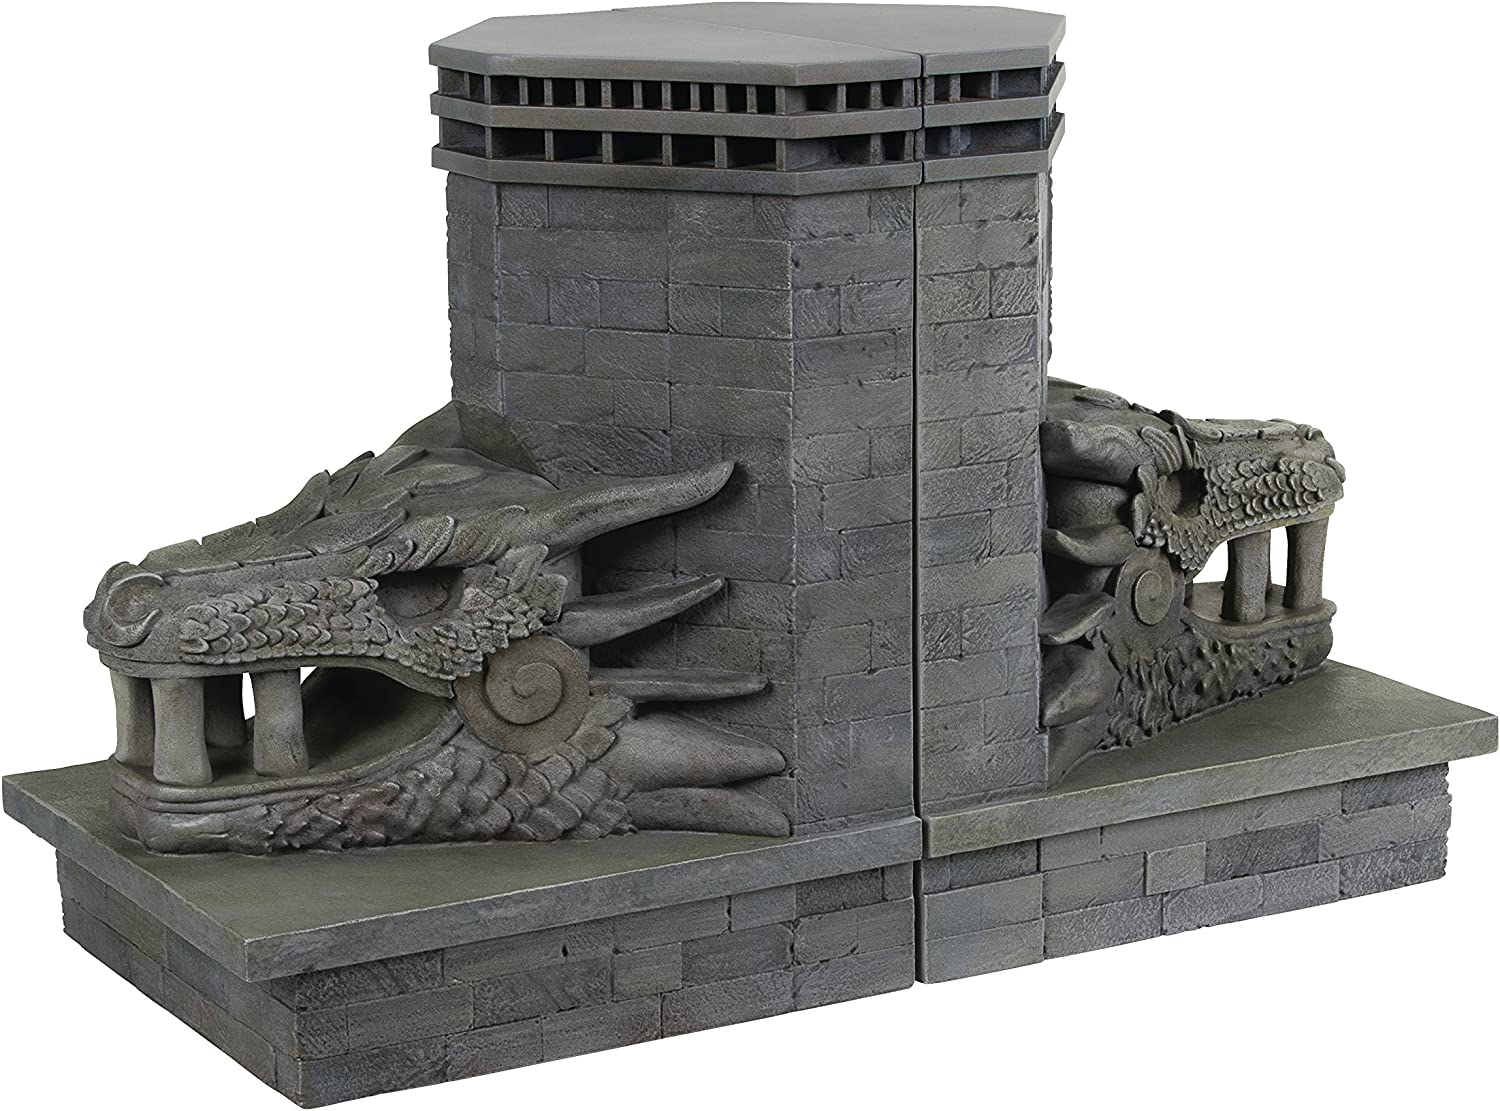 Dark Horse Deluxe Game of Thrones  Dragonstone Gate Dragon Bookends Set, Assorted